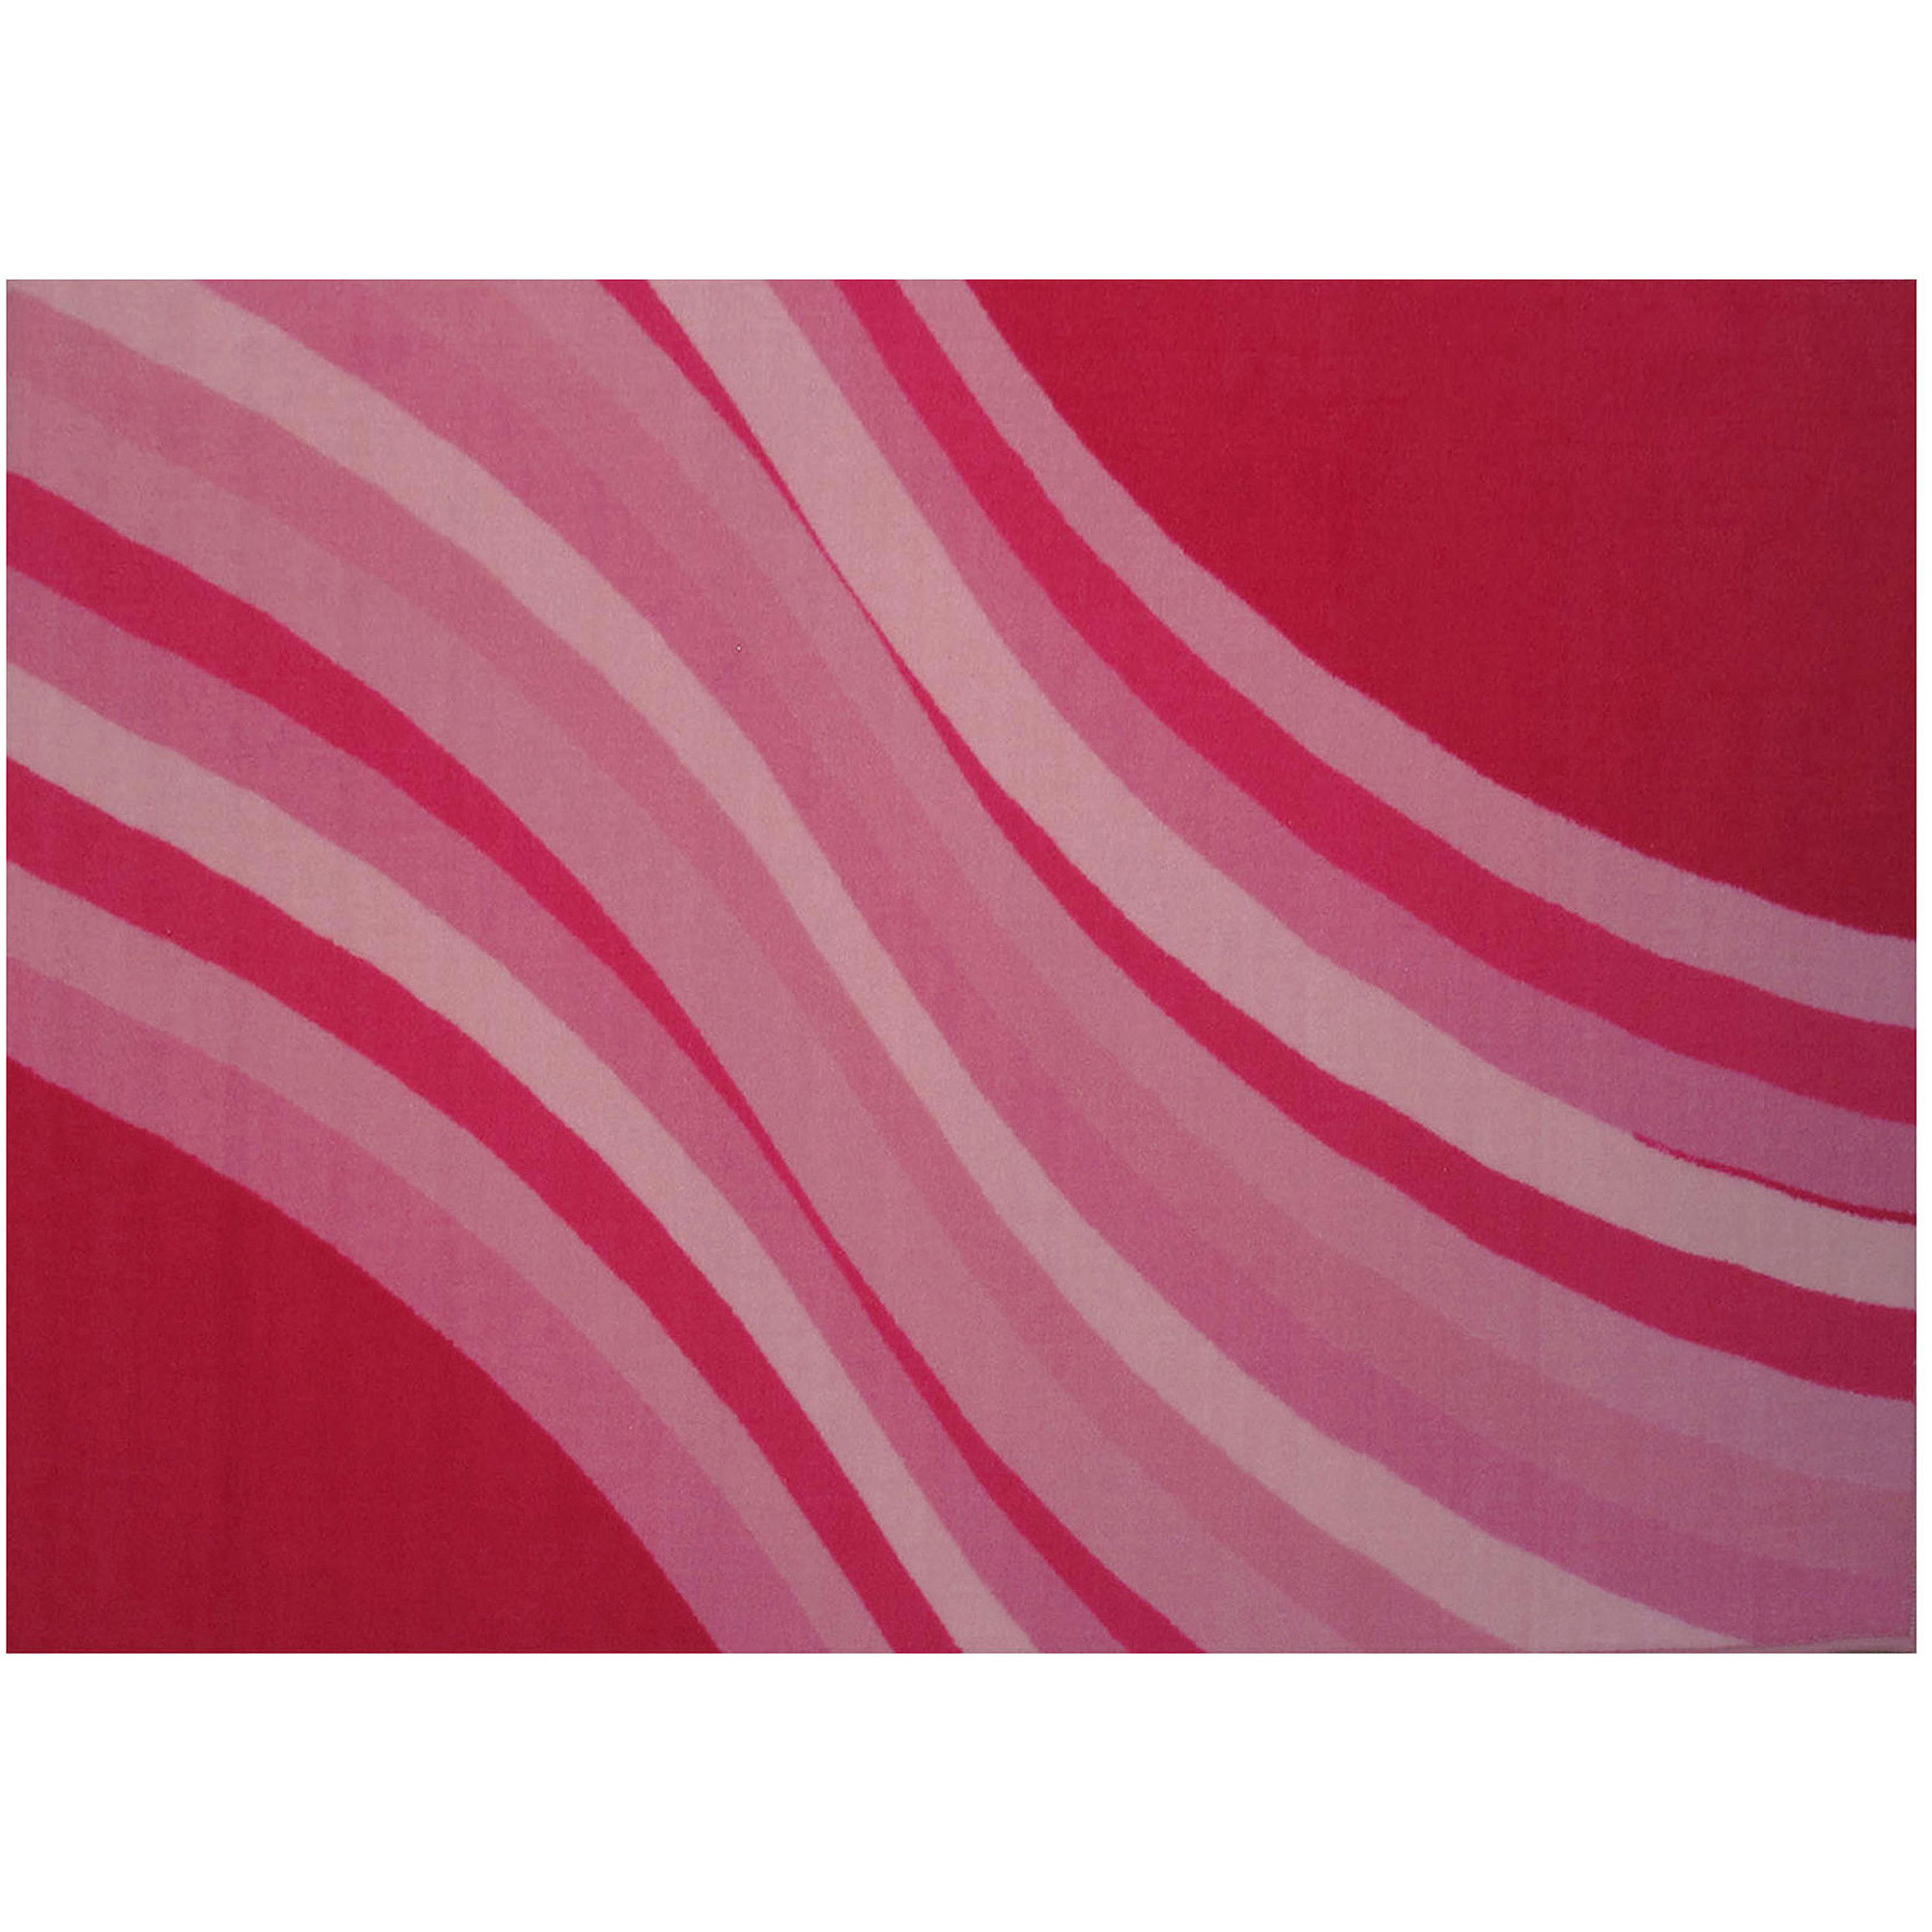 "Fun Rugs Wacky Pink Wave 19"" x 29"" Rug"